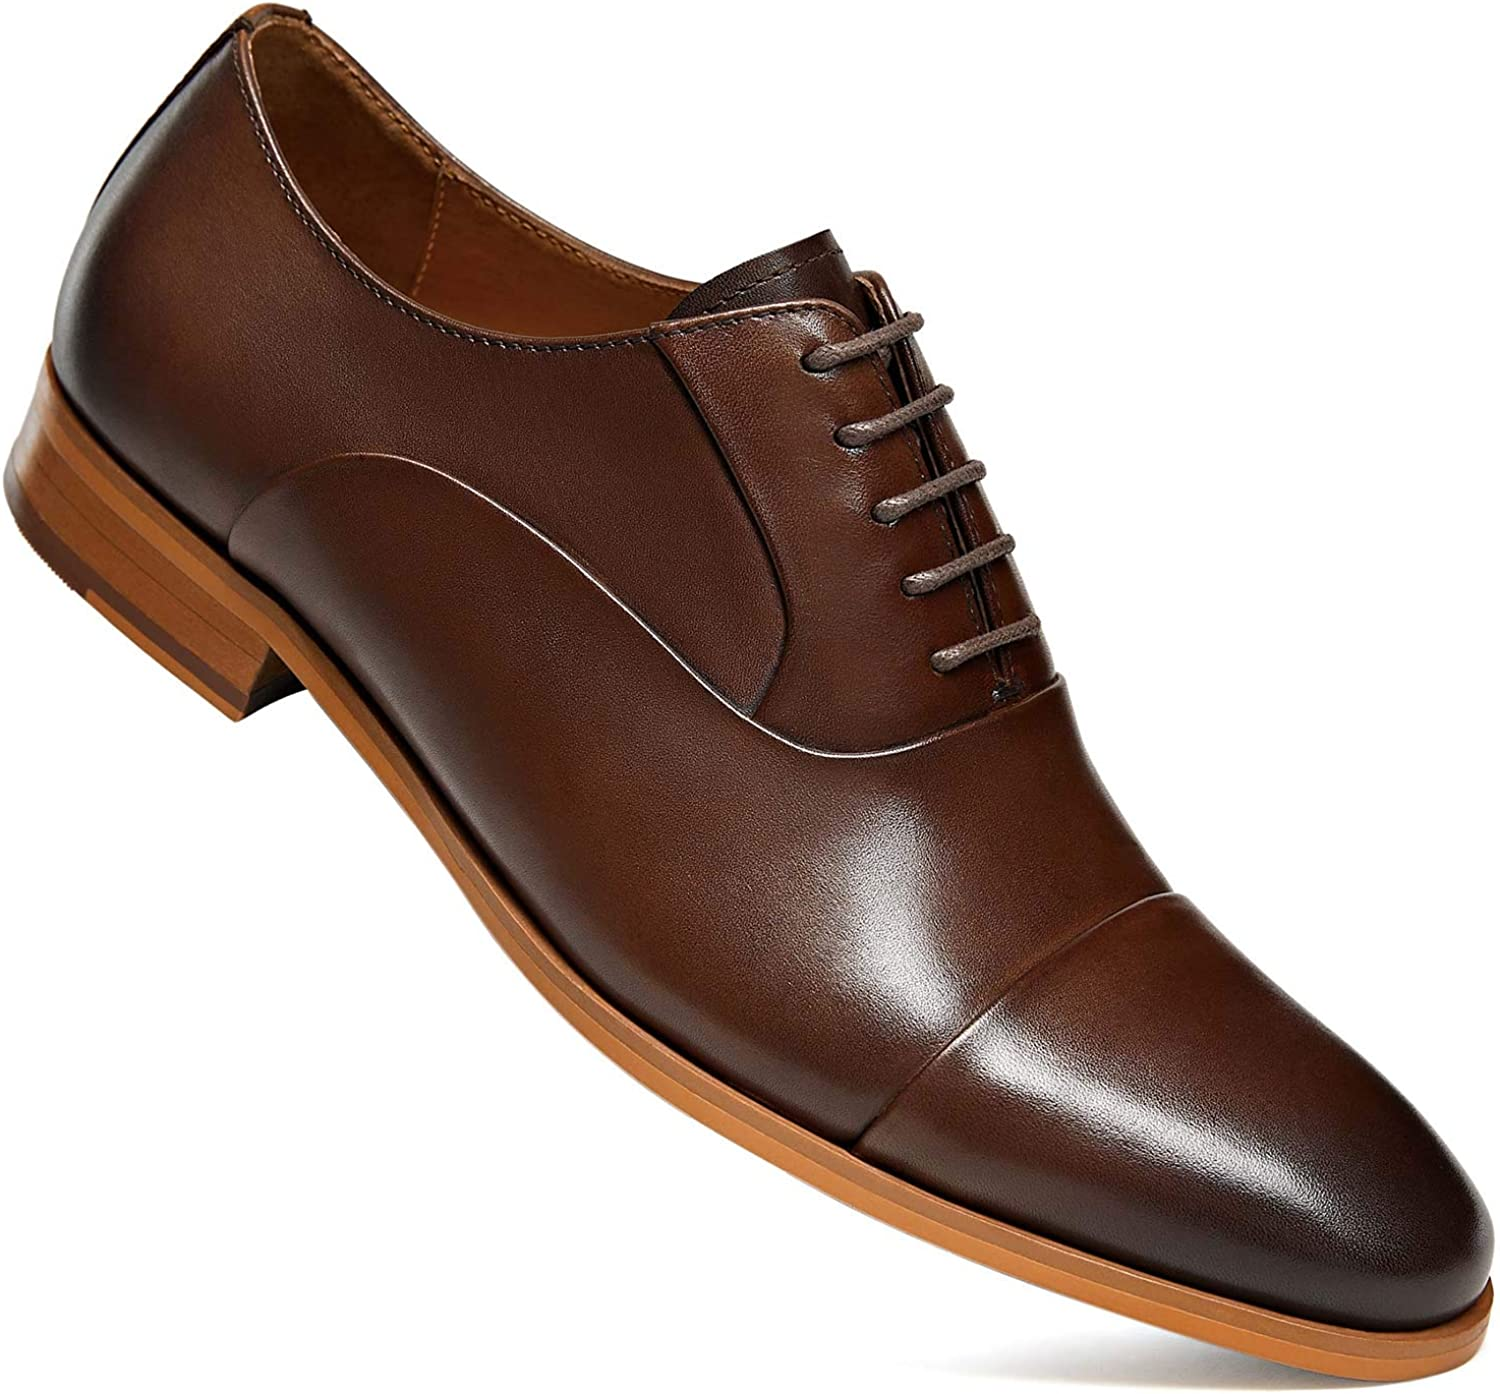 FRASOICUS Mens Dress Shoes Oxford Up Leather Wingtip Formal security Import Lace